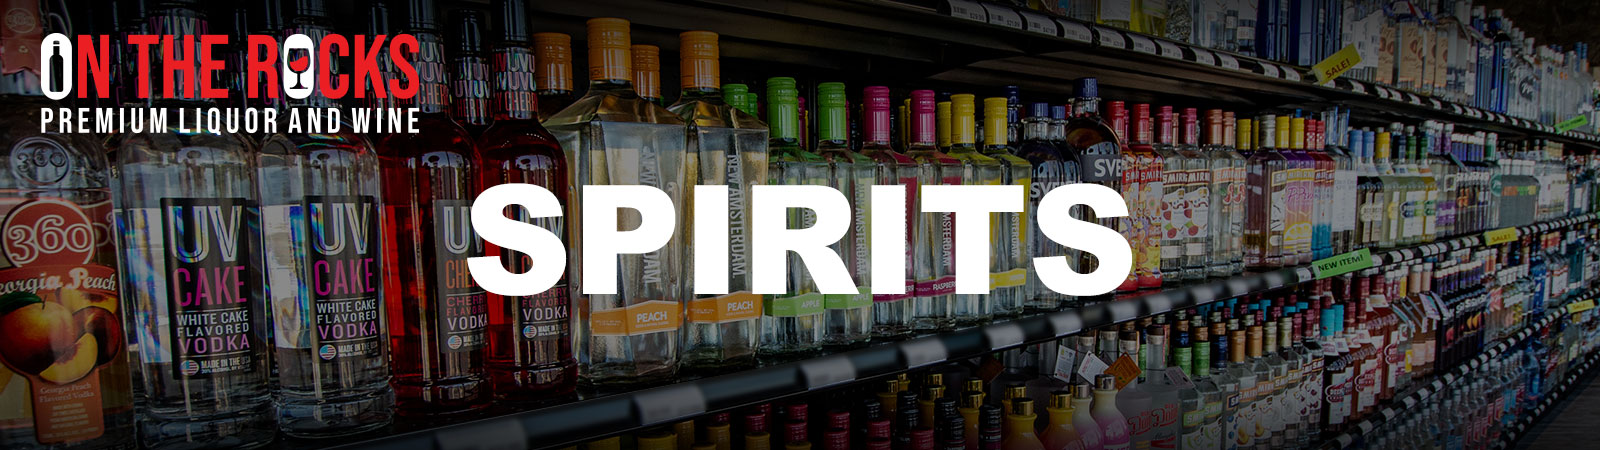 On-The-Rocks-Premium-Liquor-and-Wine-St.-Charles-Spirits-Page-Banner